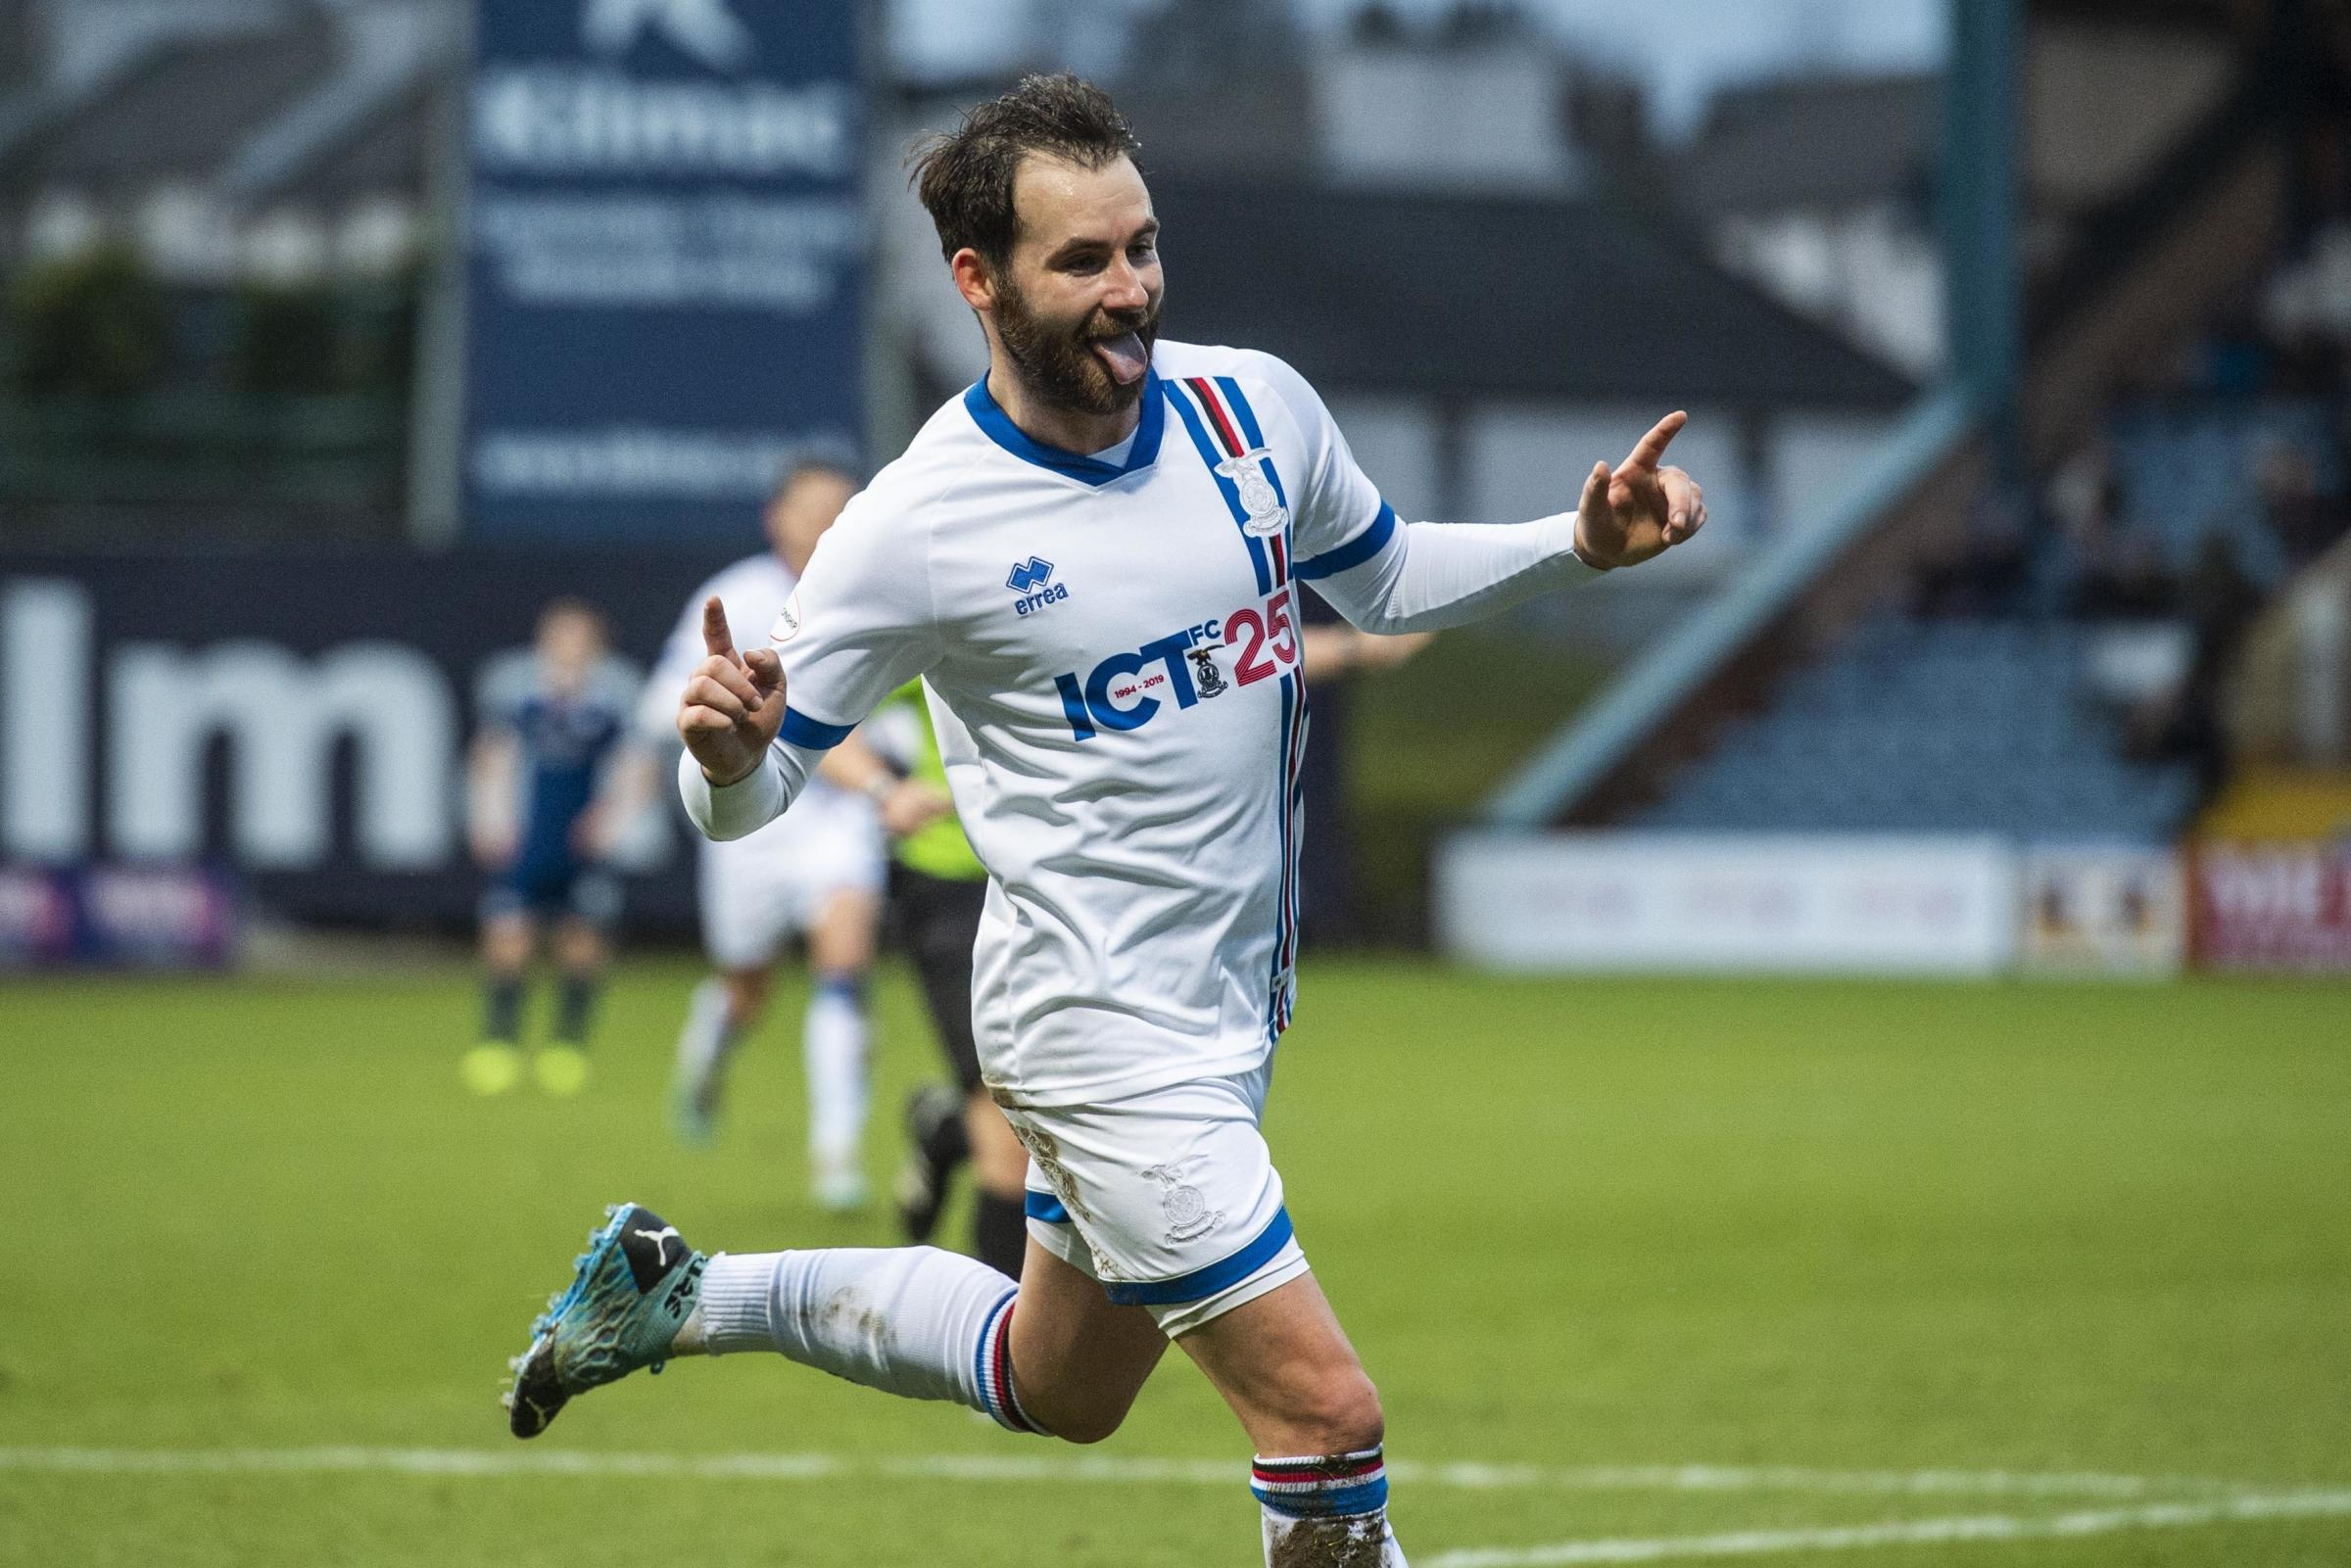 St Mirren could make a January move for striker James Keatings